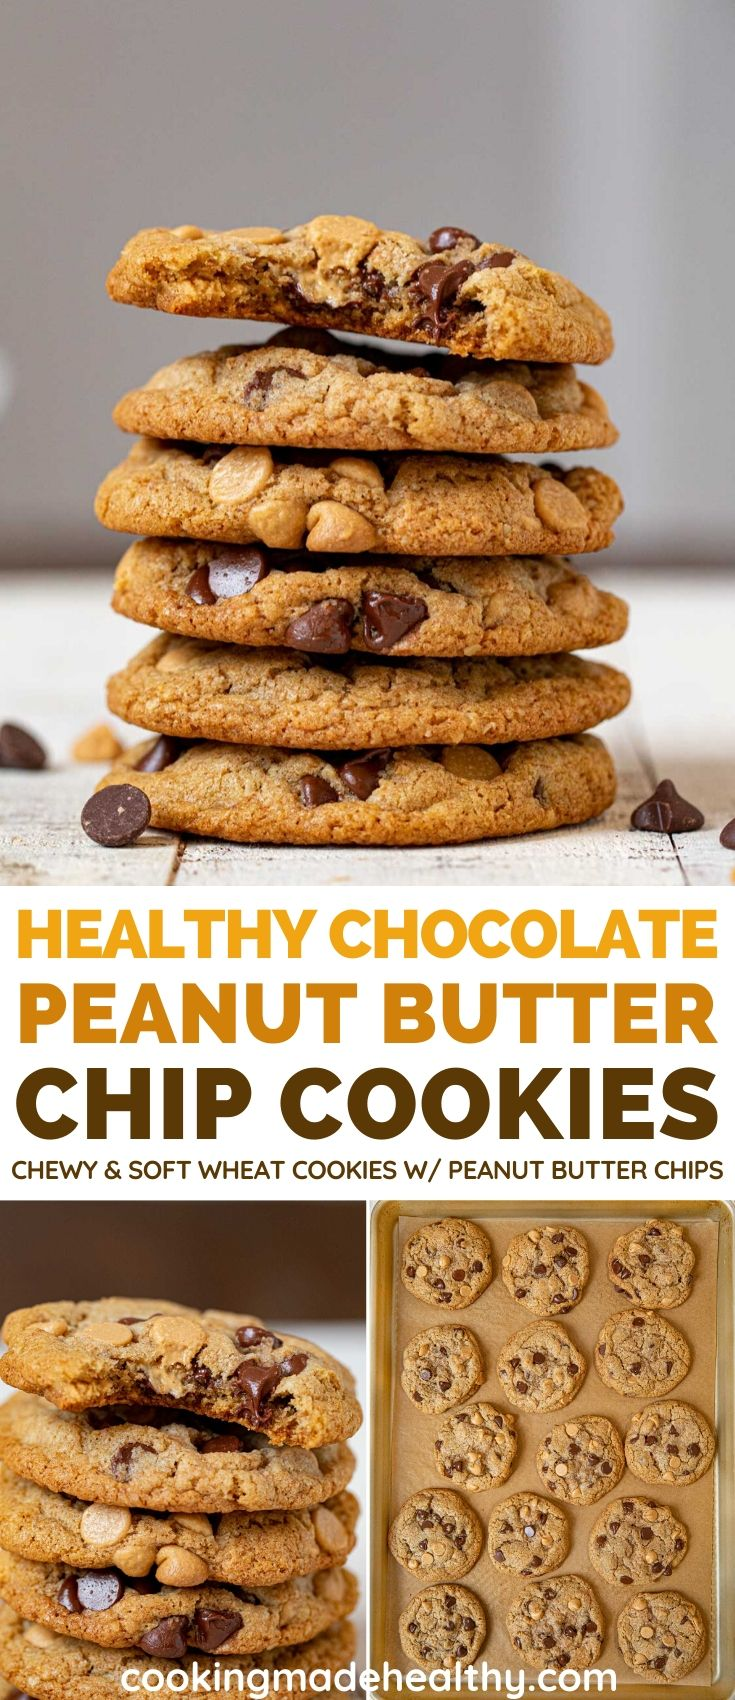 Whole Wheat Peanut Butter Chip Cookies collage